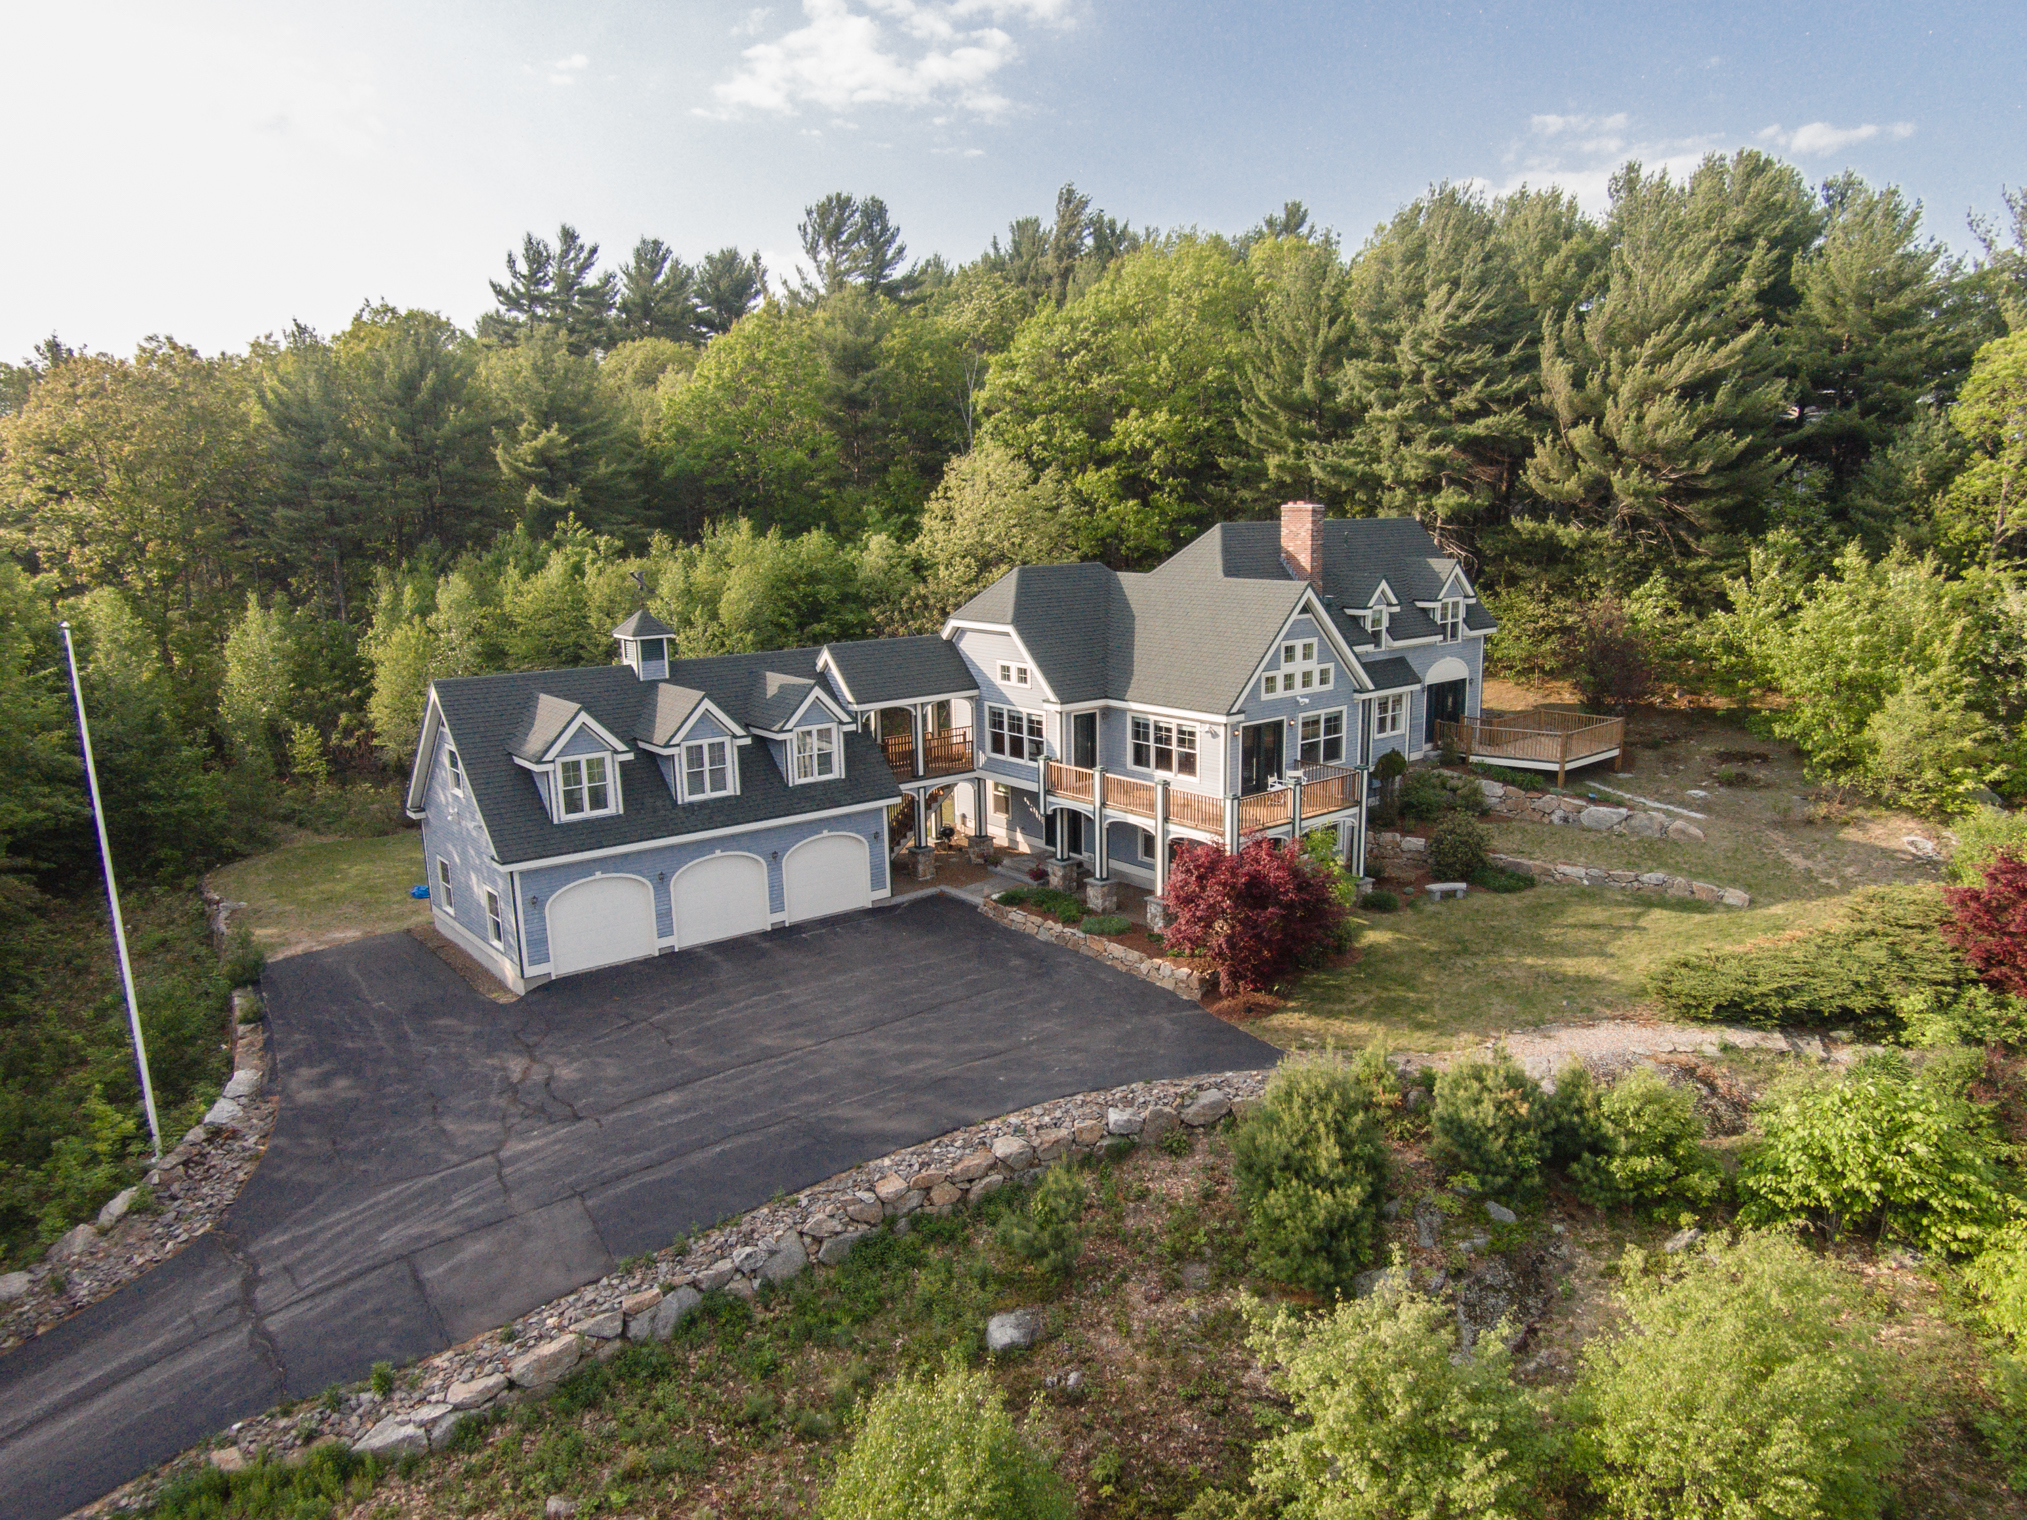 Single Family Home for Sale at 89 Tracy Way, Meredith Meredith, New Hampshire 03253 United States